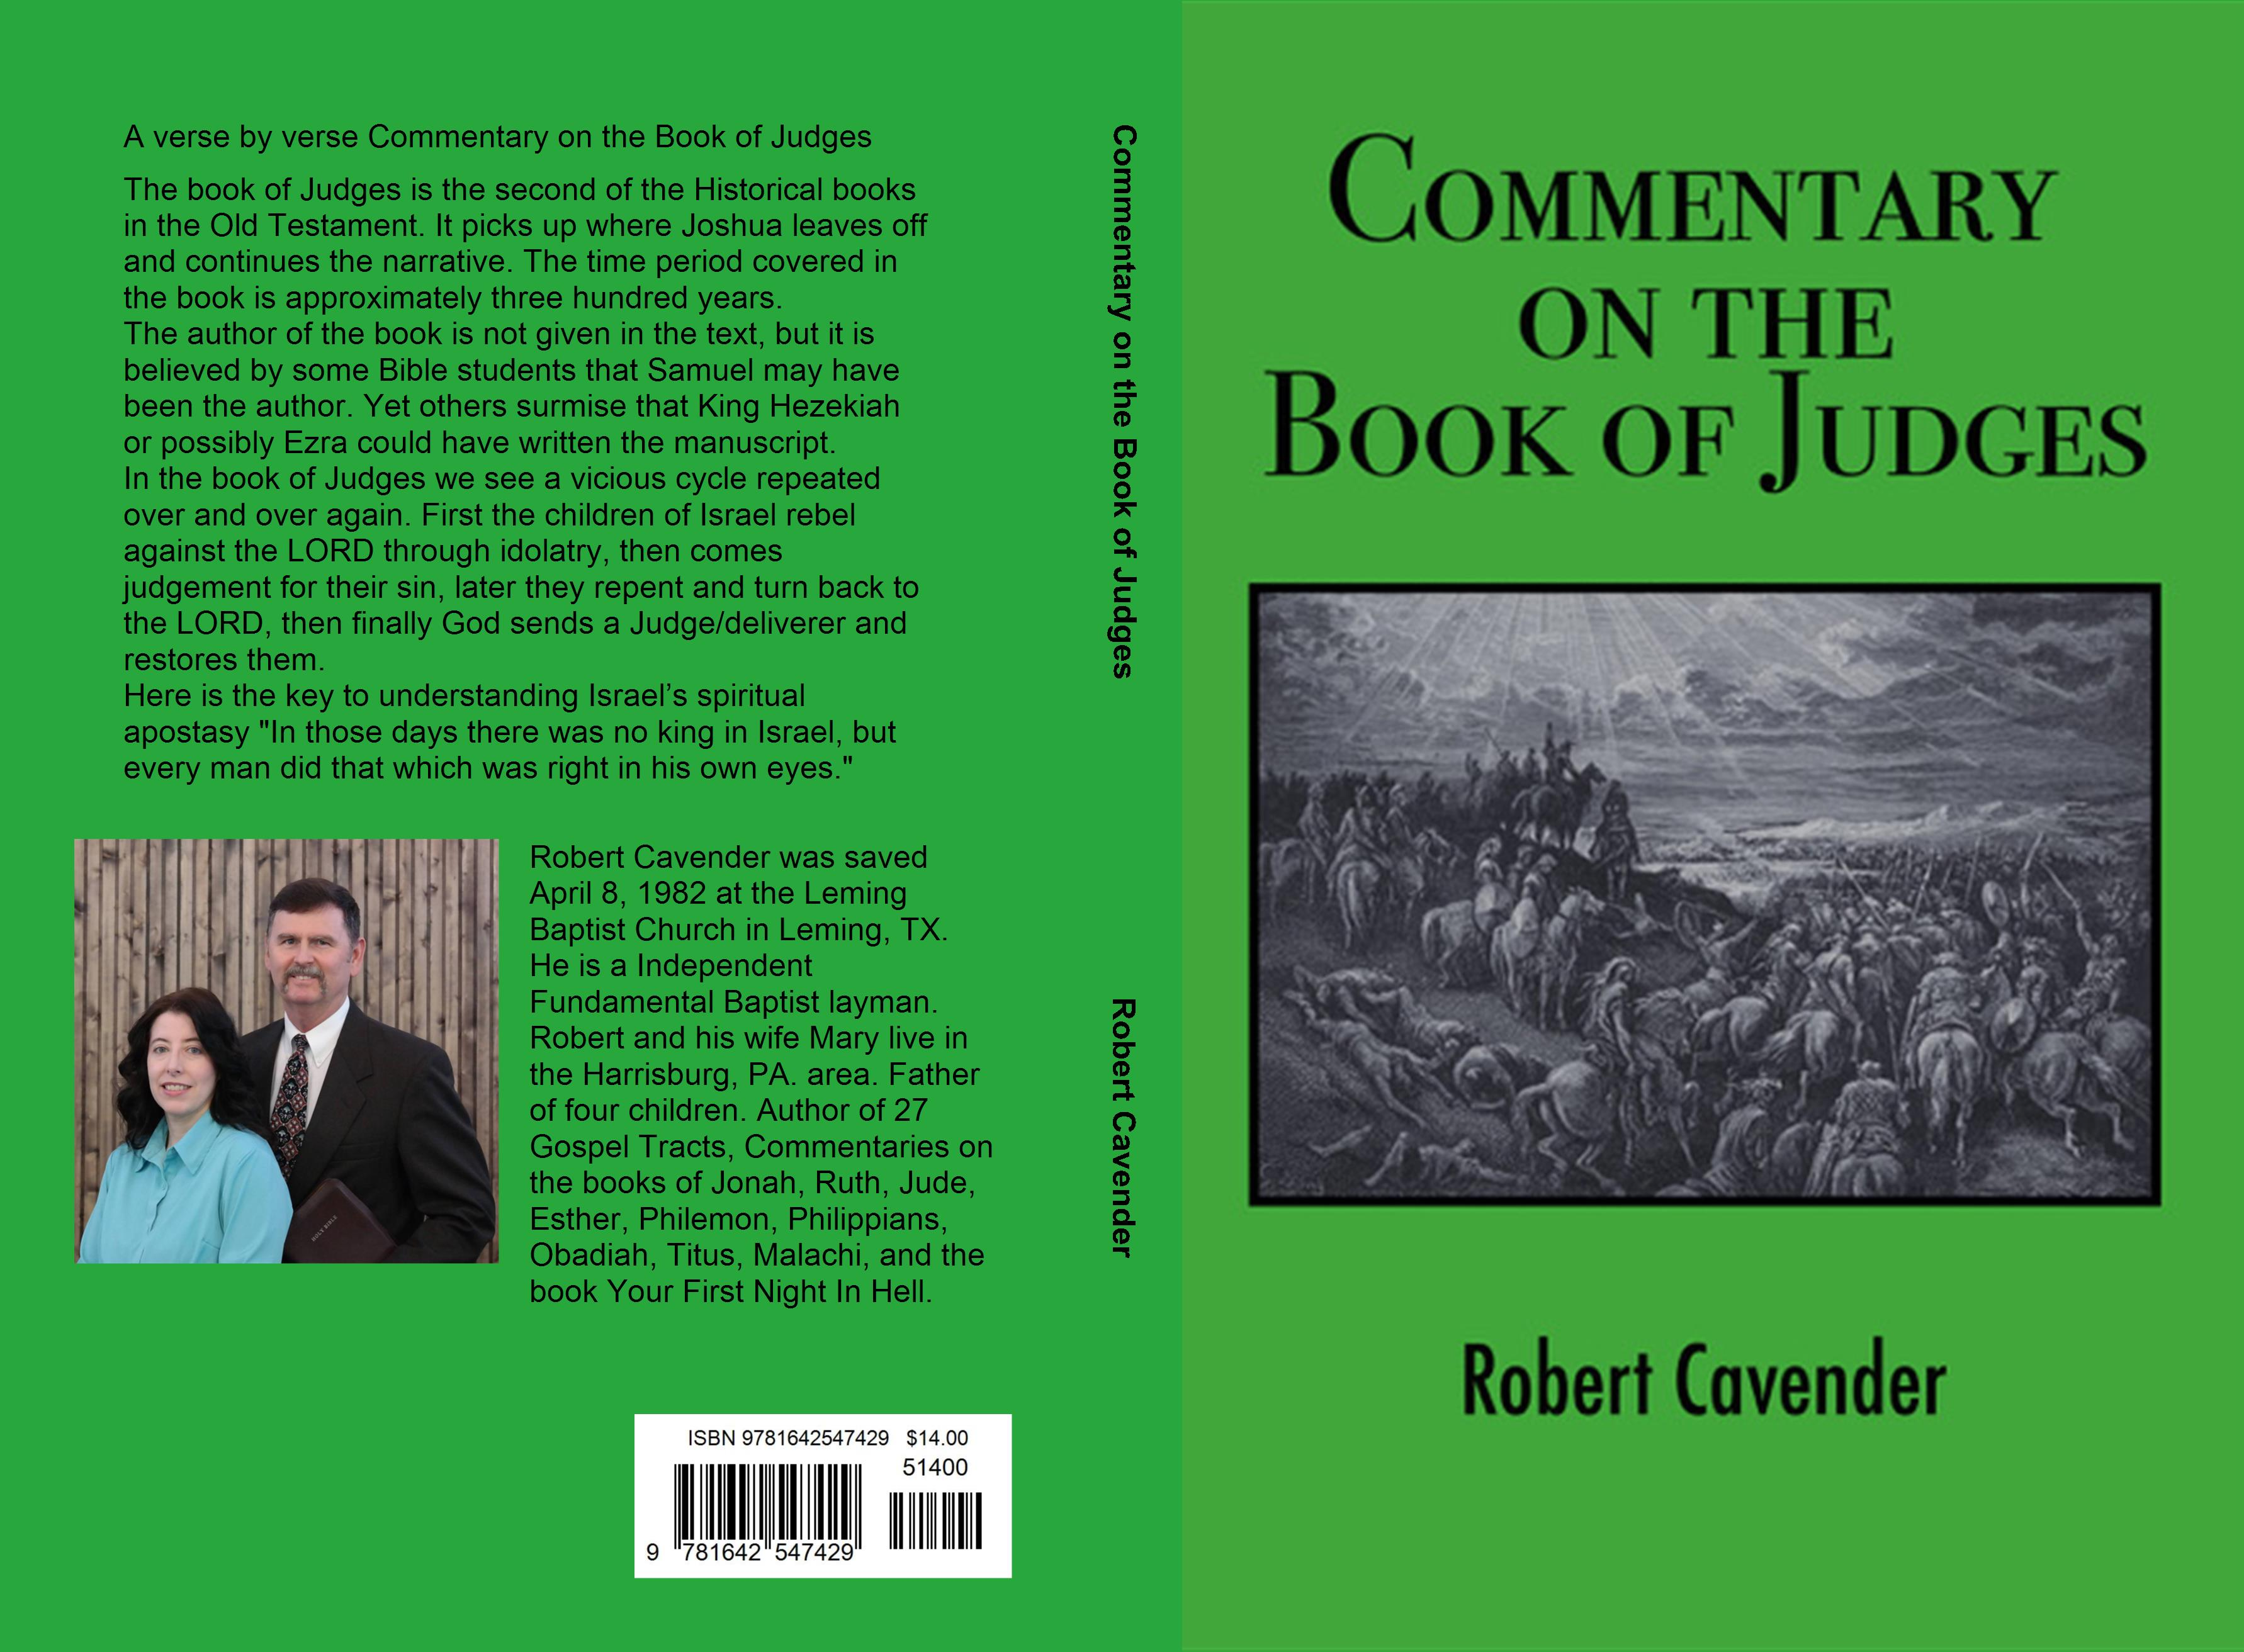 Commentary on the Book of Judges cover image